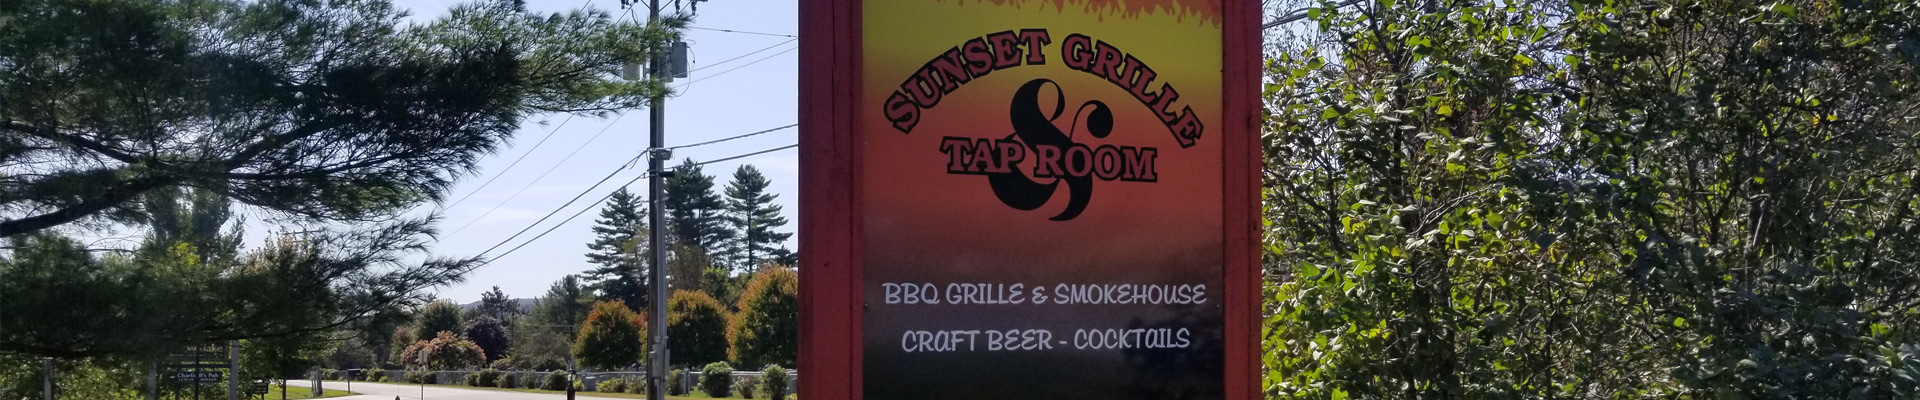 Sunset Grille and Tap Room